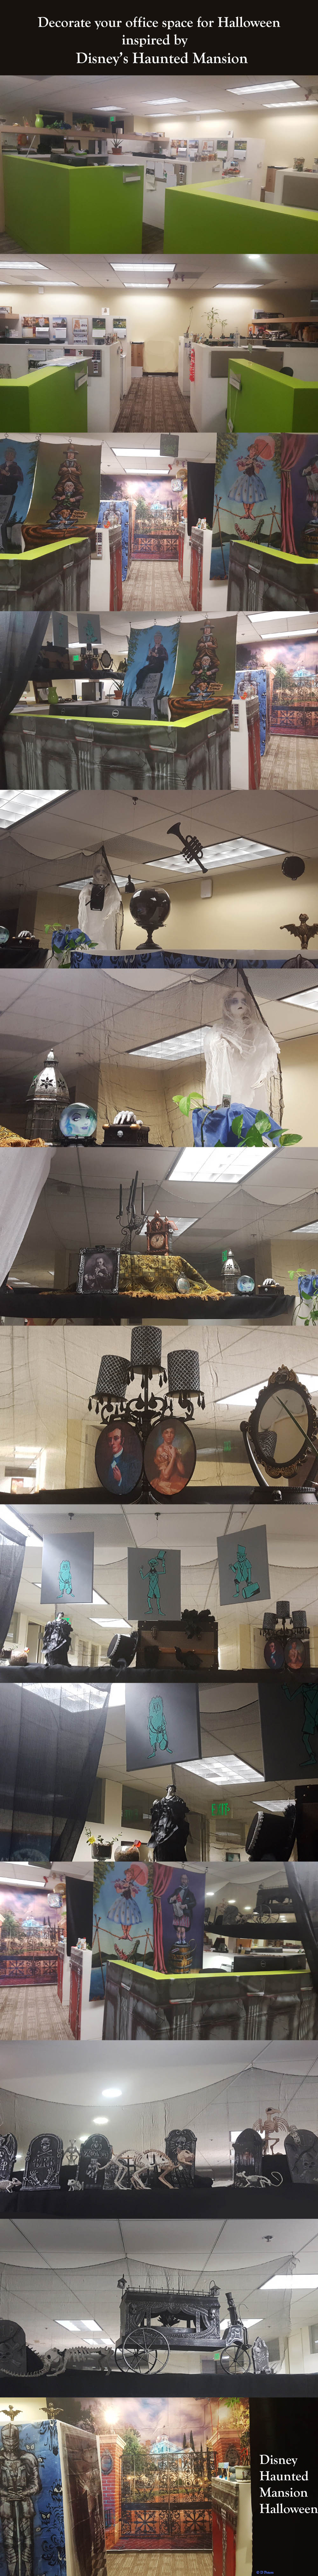 Haunted Mansion inspired Halloween decorations at the office - Halloween Office Decorations Ideas